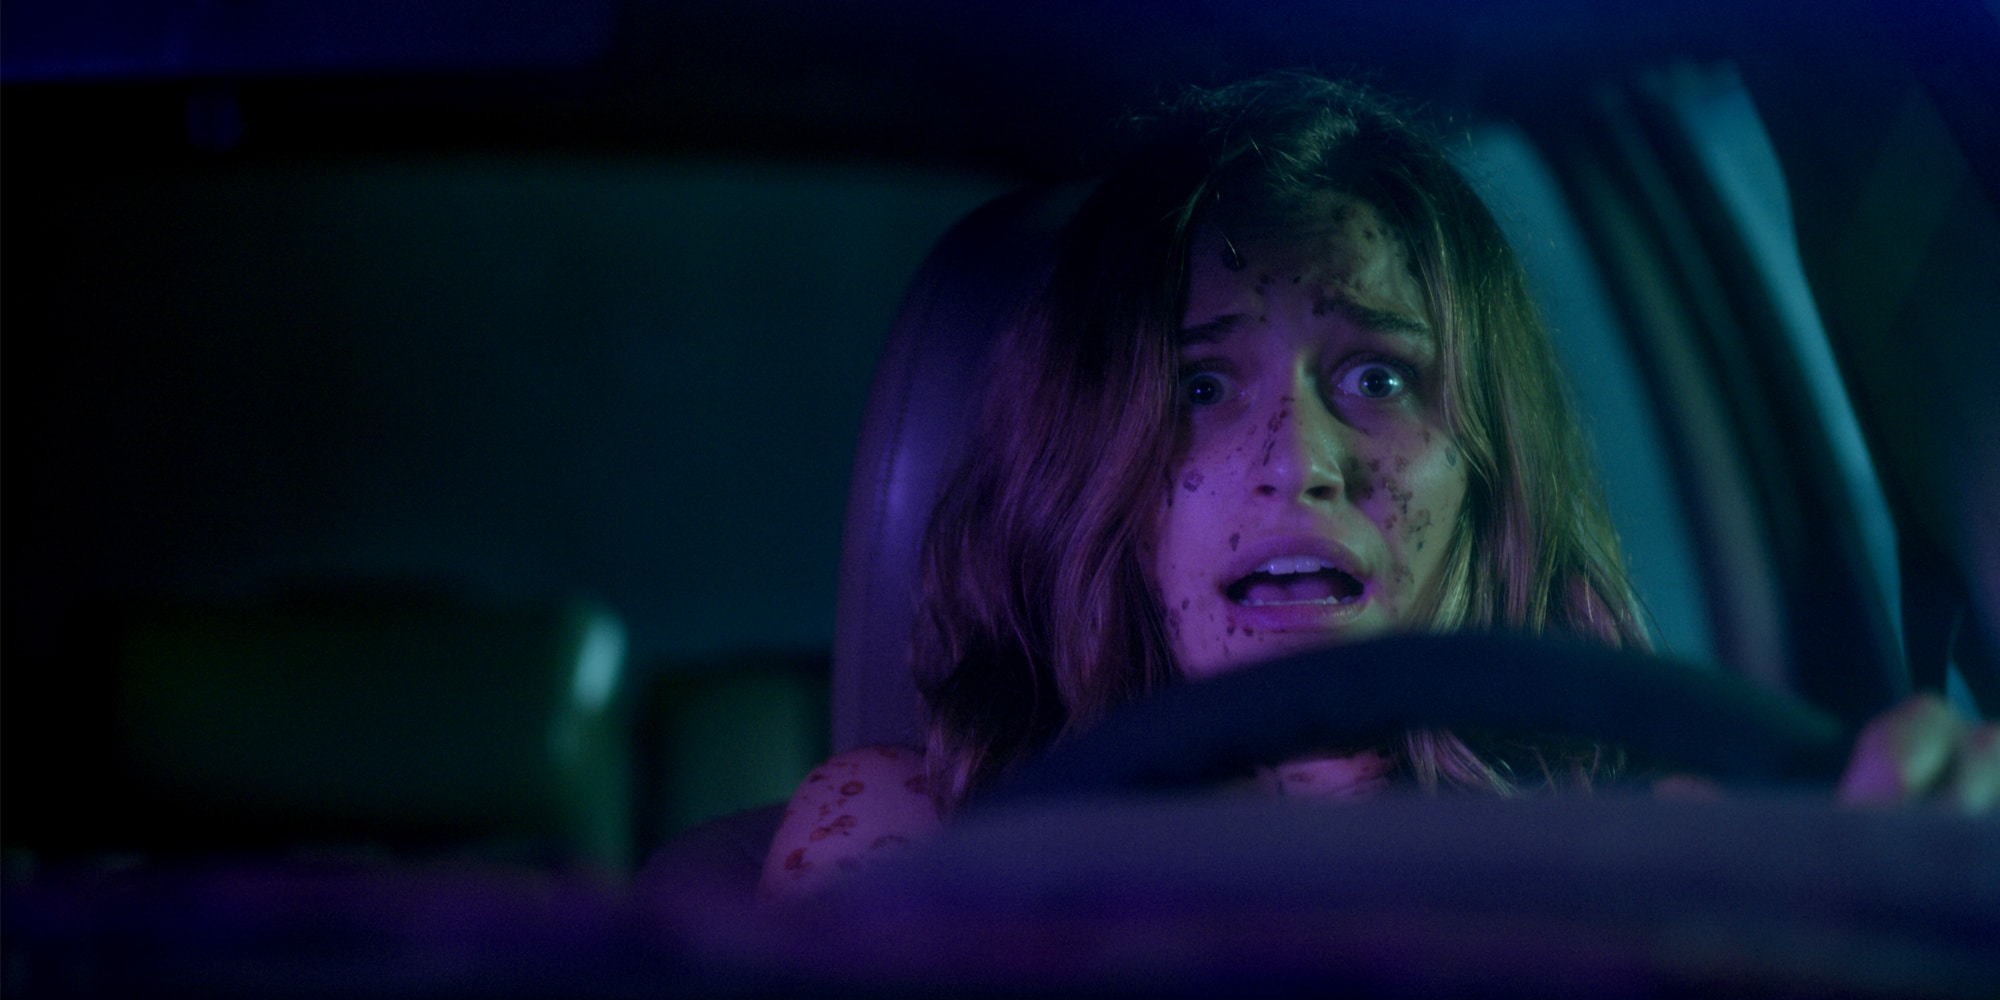 [Review] Horror Anthology SCARE PACKAGE is Made With Lifelong Horror Fans in Mind